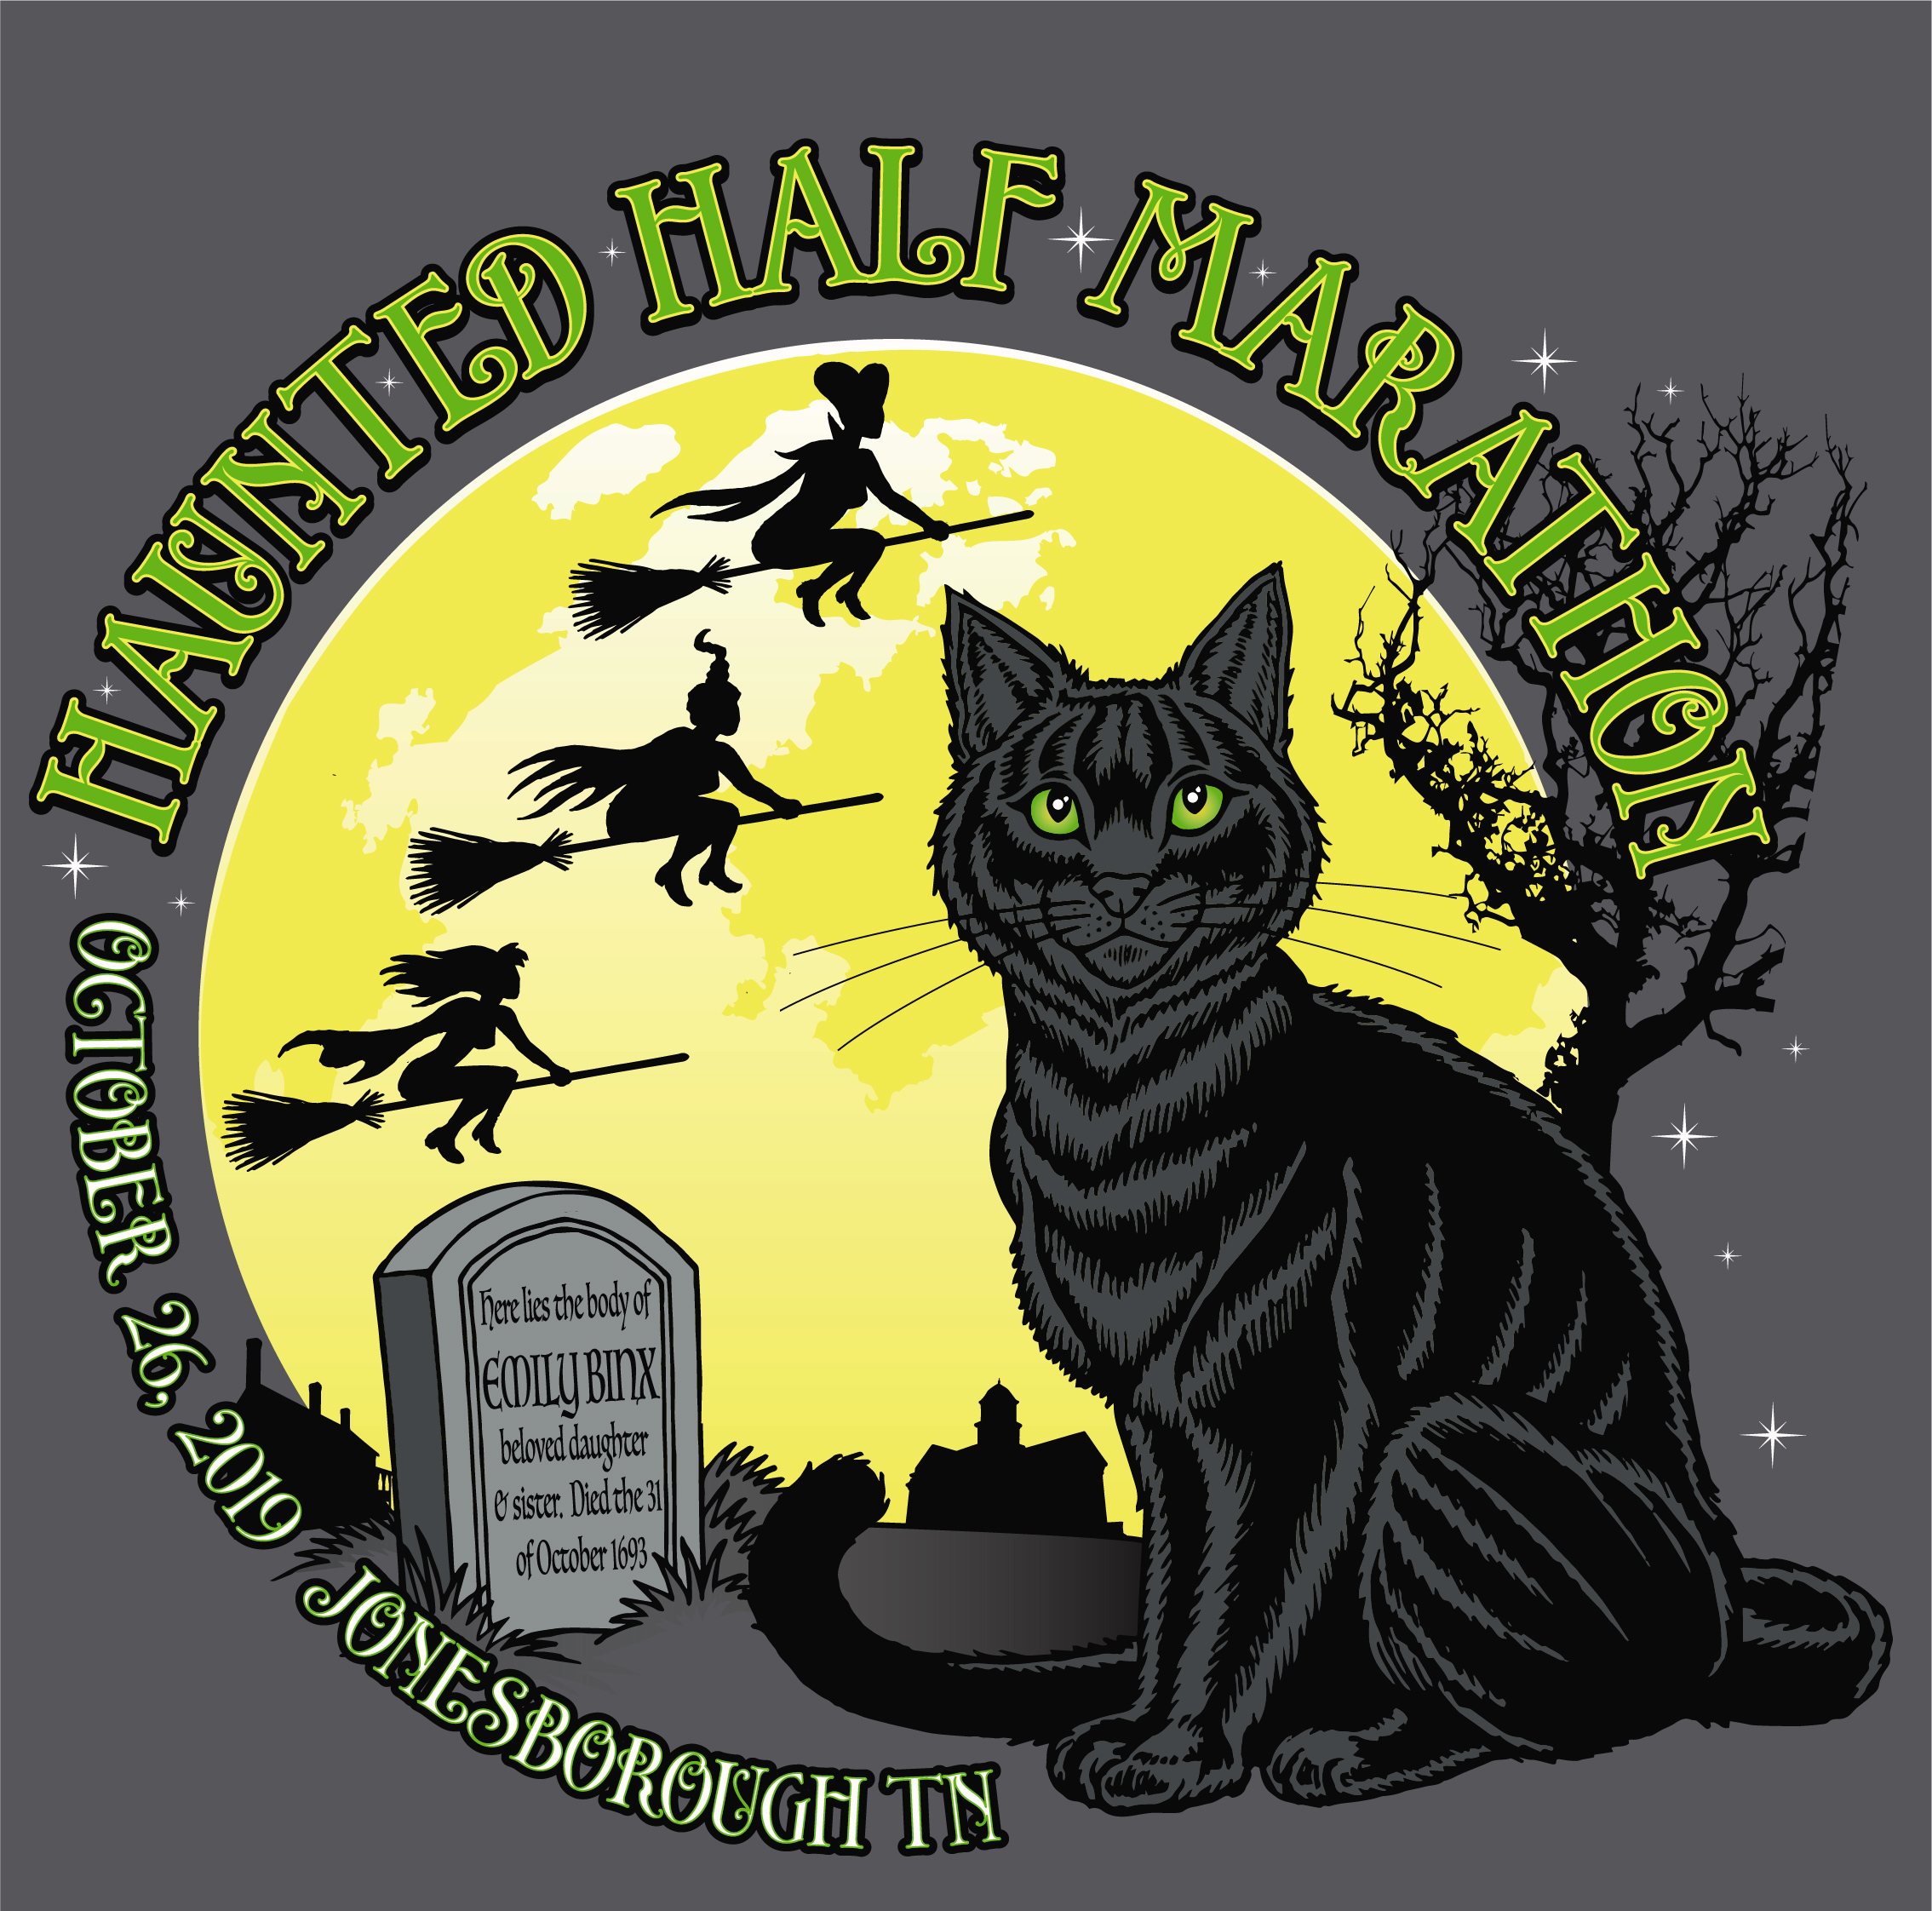 Haunted Half 19 Artwork